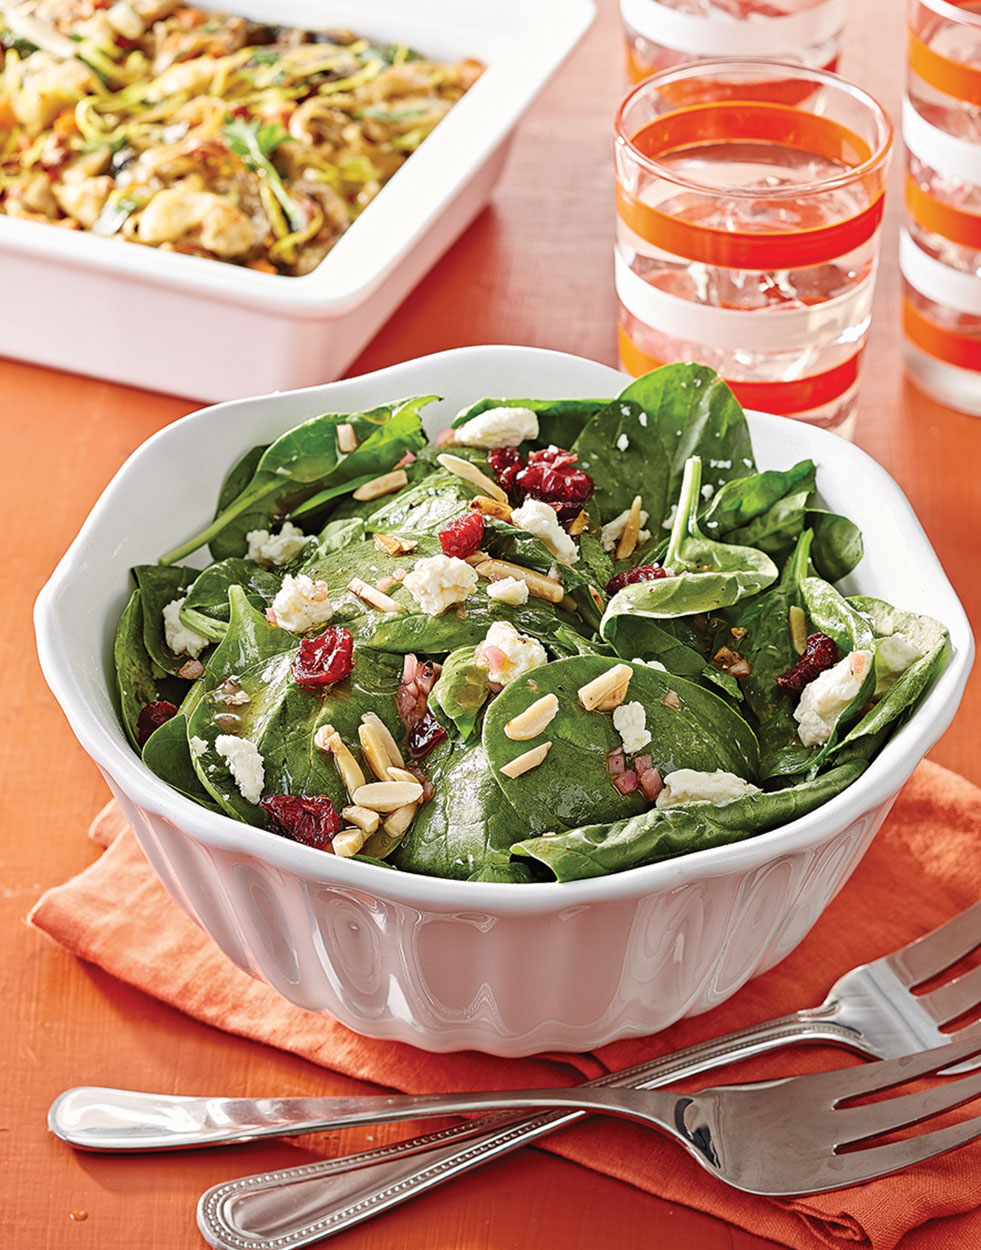 Spinach Salad with Dried Cranberries & Feta